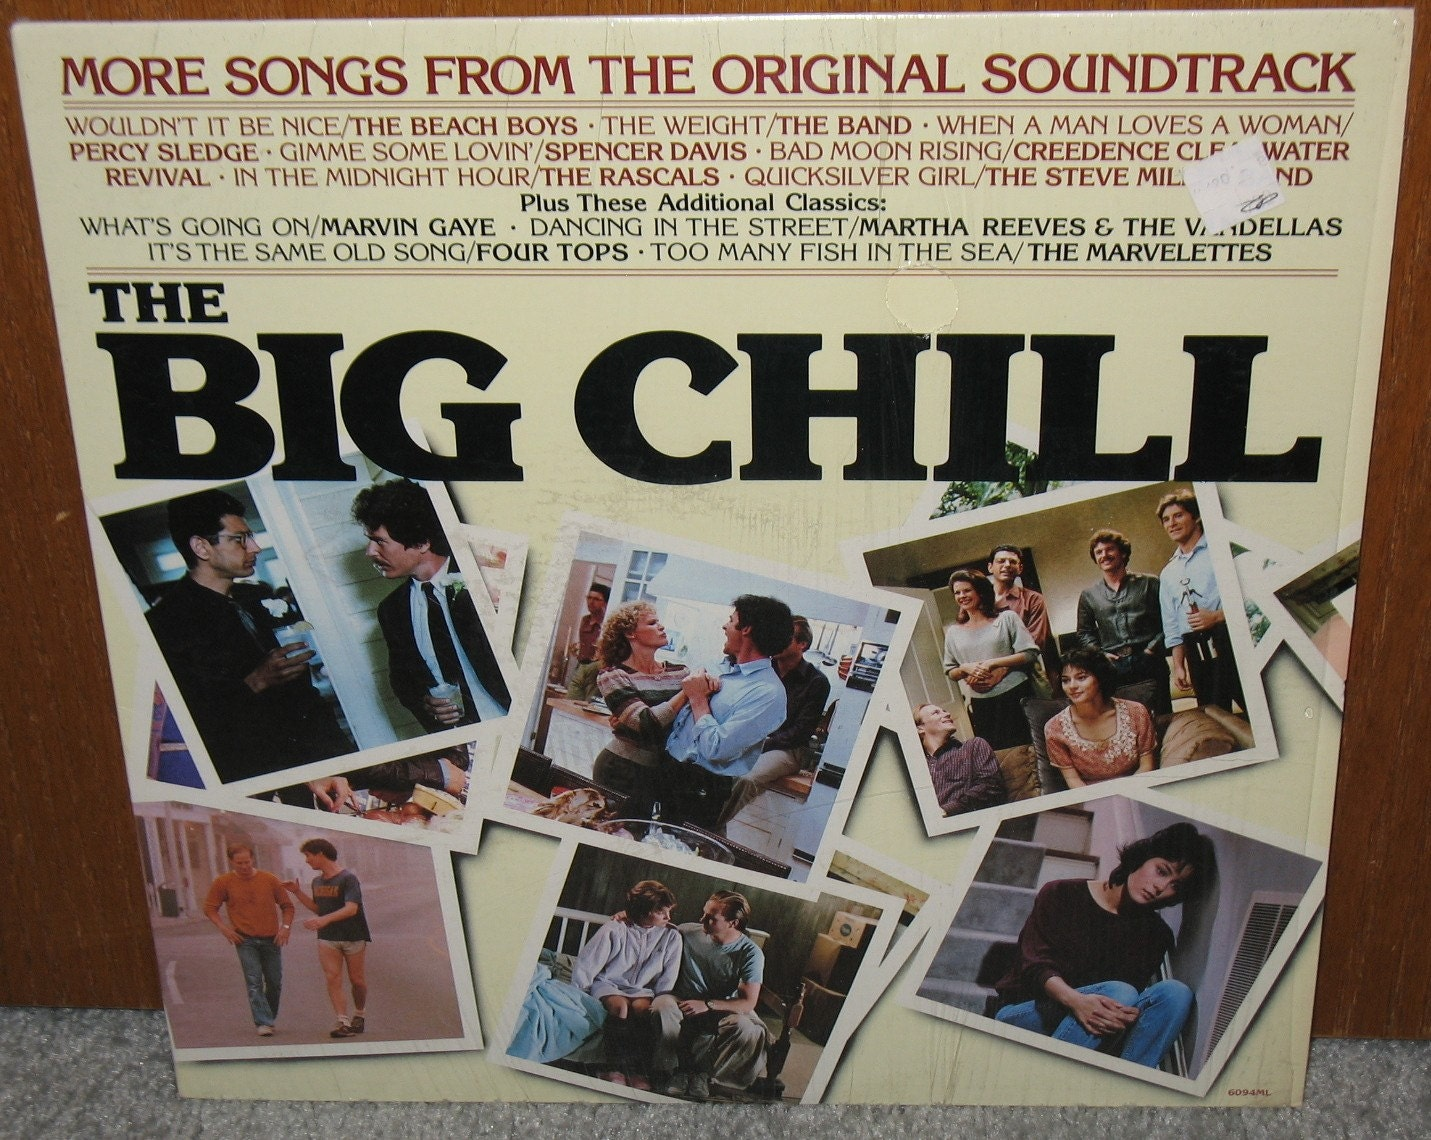 The Big Chill Soundtrack Lp Vinyl Record Album Movie Music 80s